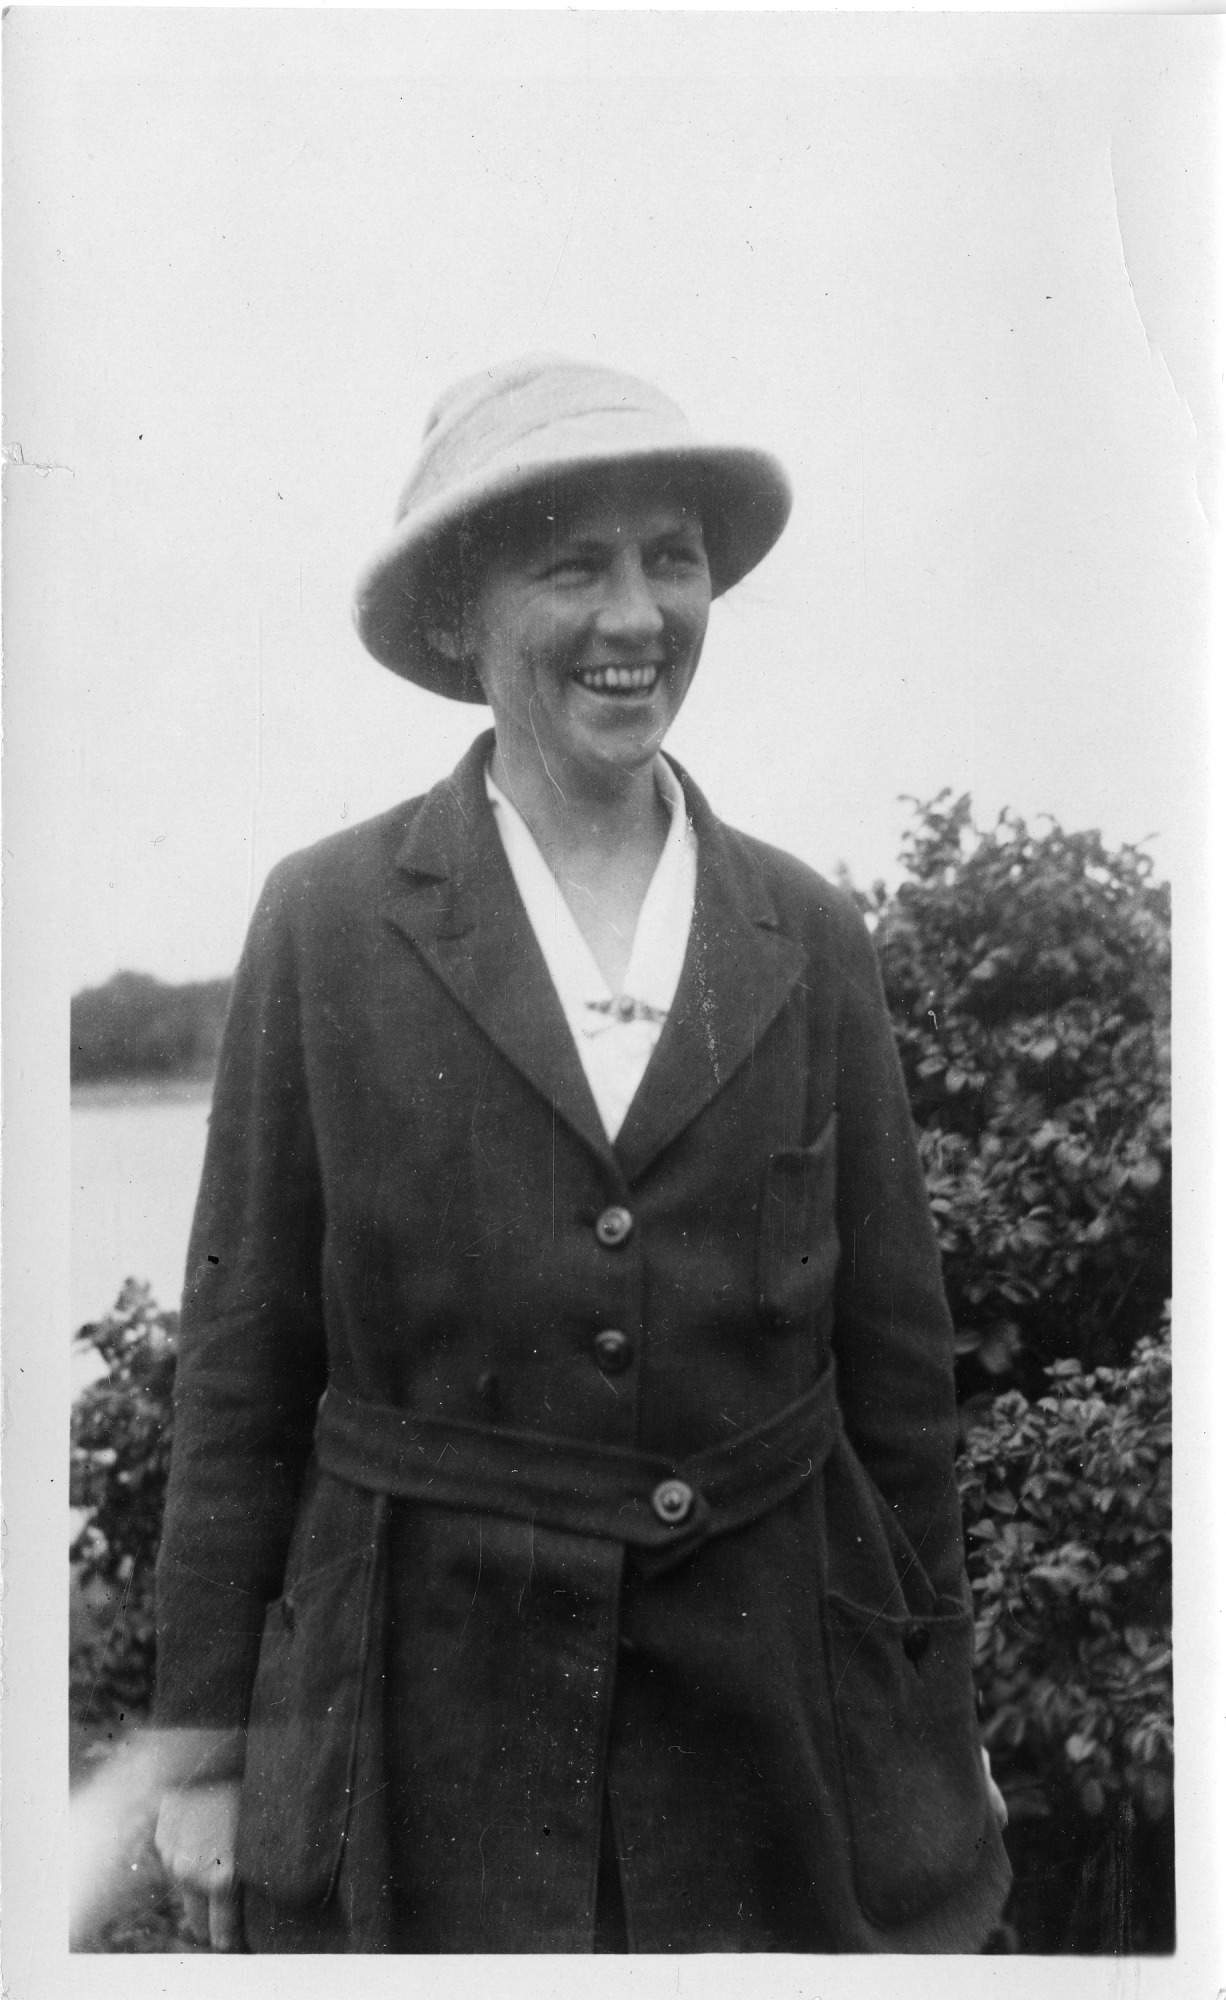 Ann Haven Morgan (1882-1966), Smithsonian Institution Archives, SIA Acc. 90-105 [SIA2009-1068].